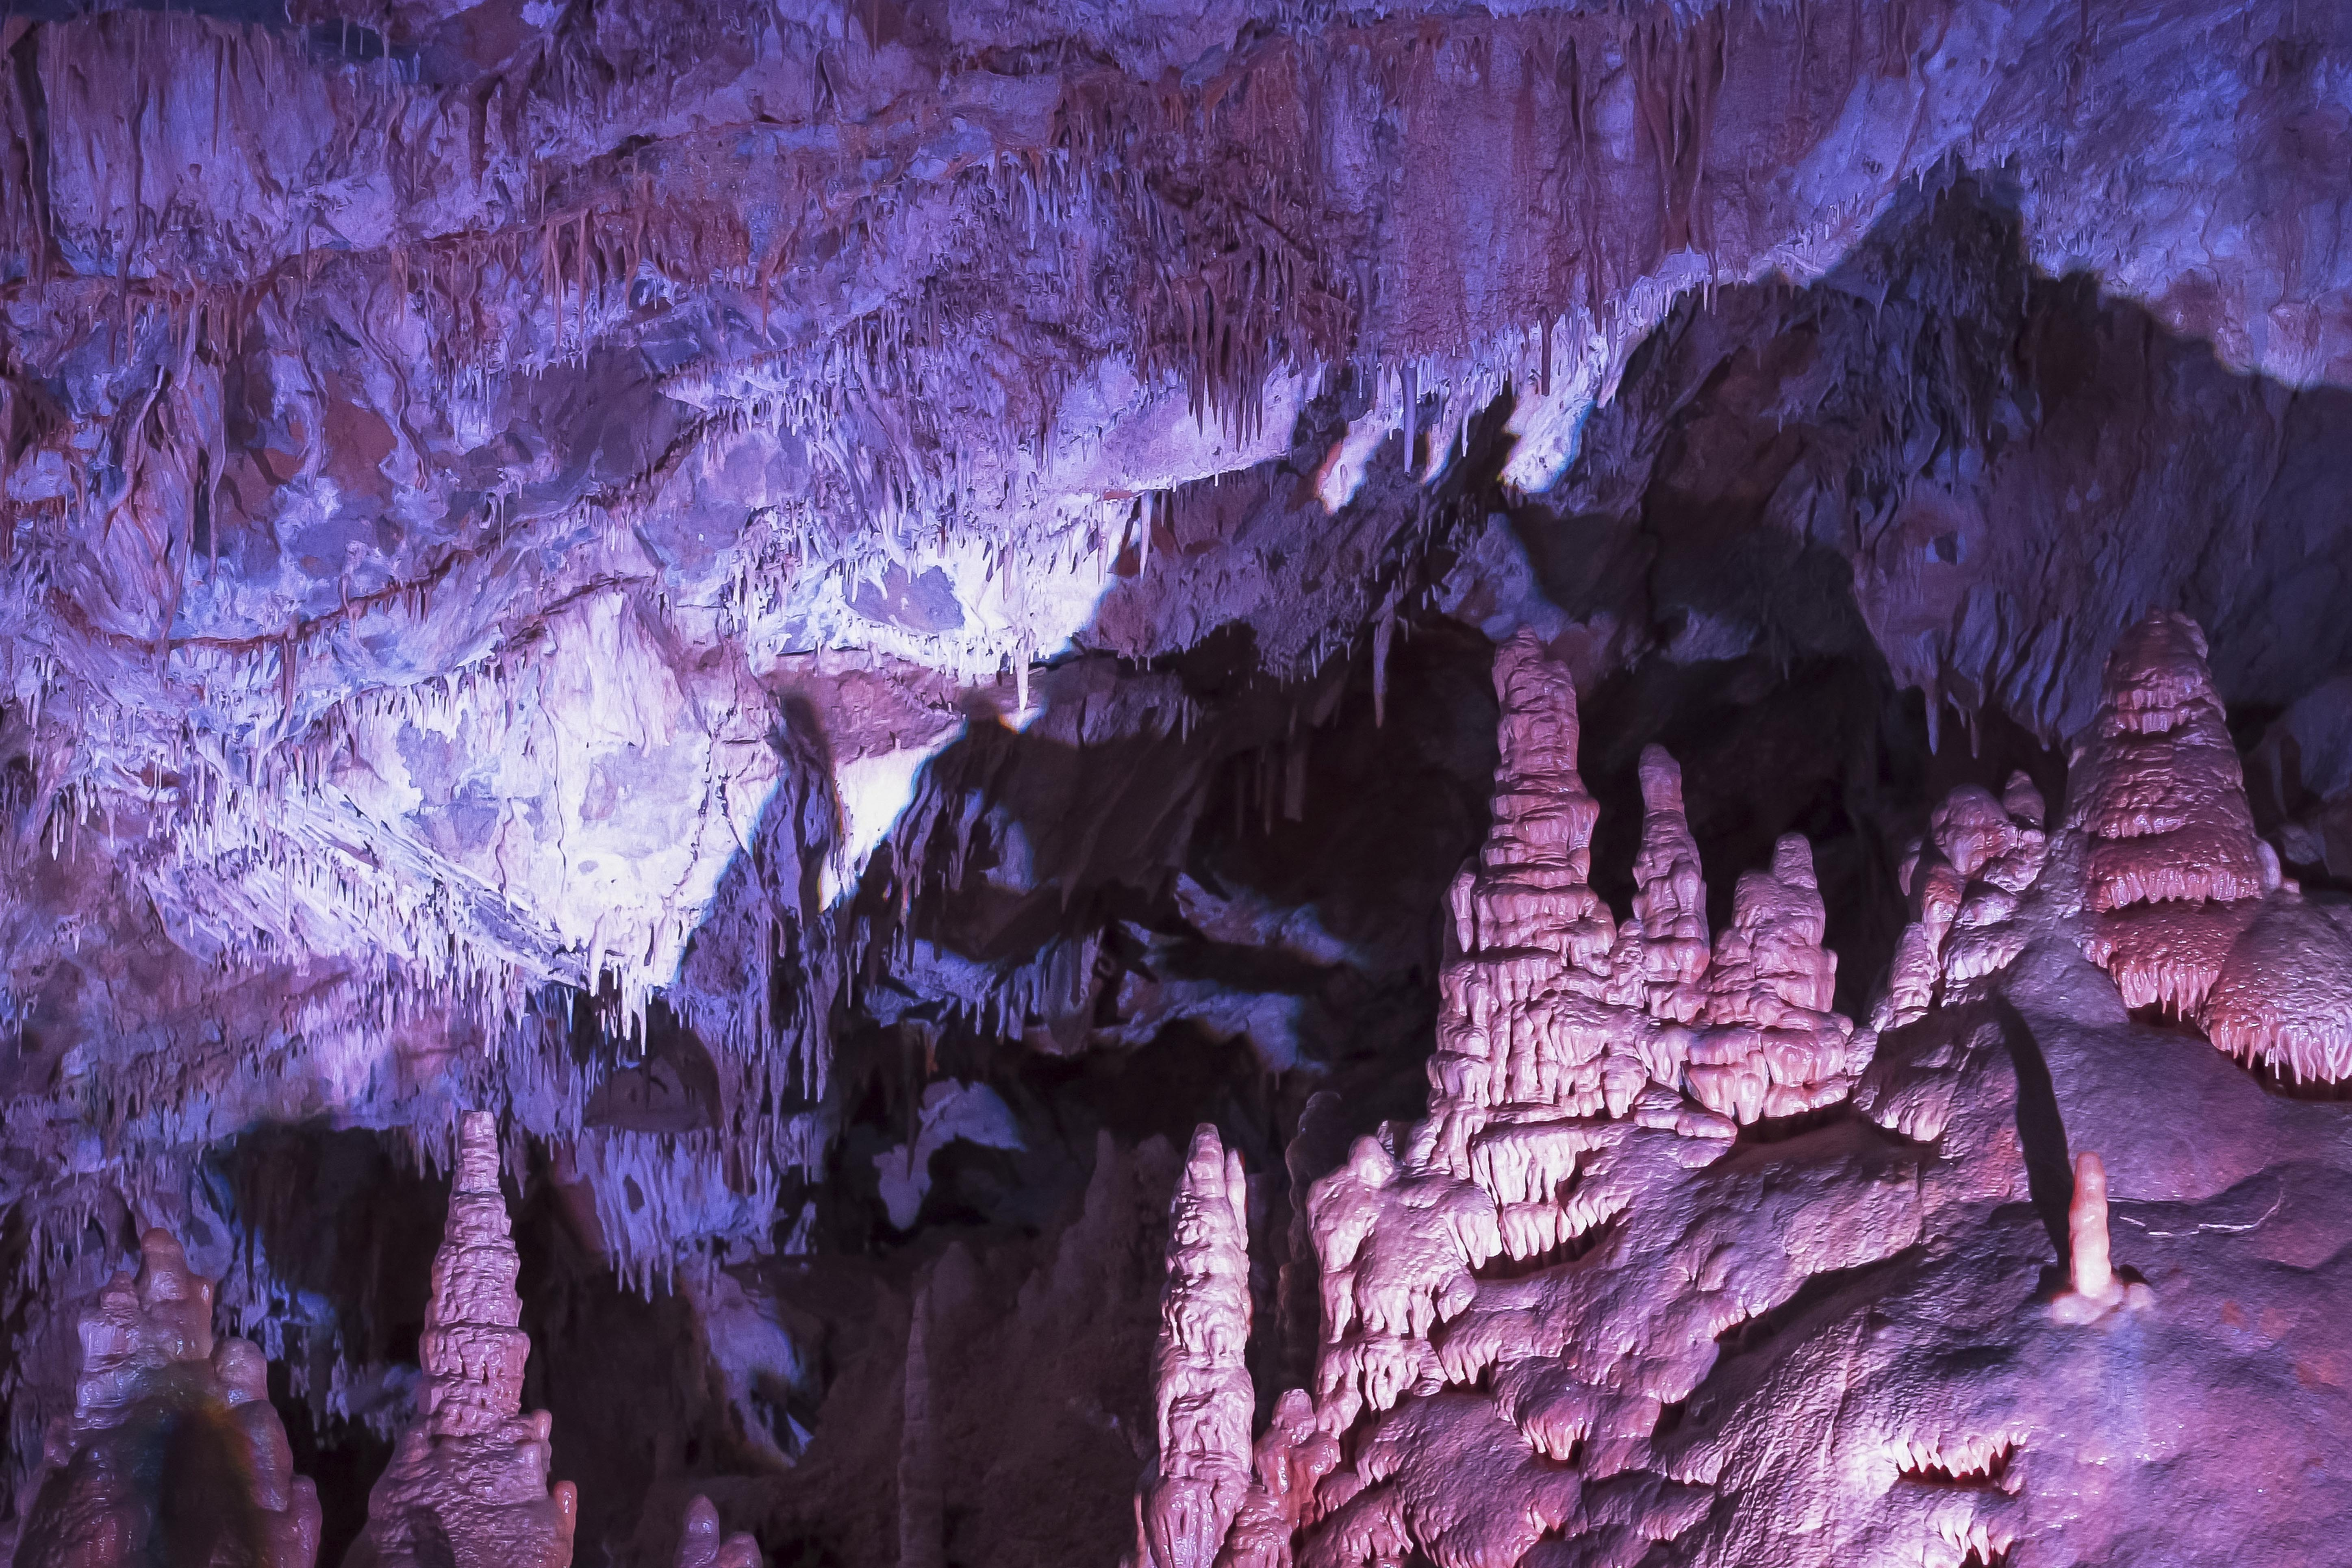 Lewis and Clarks Caverns State Park in Montana